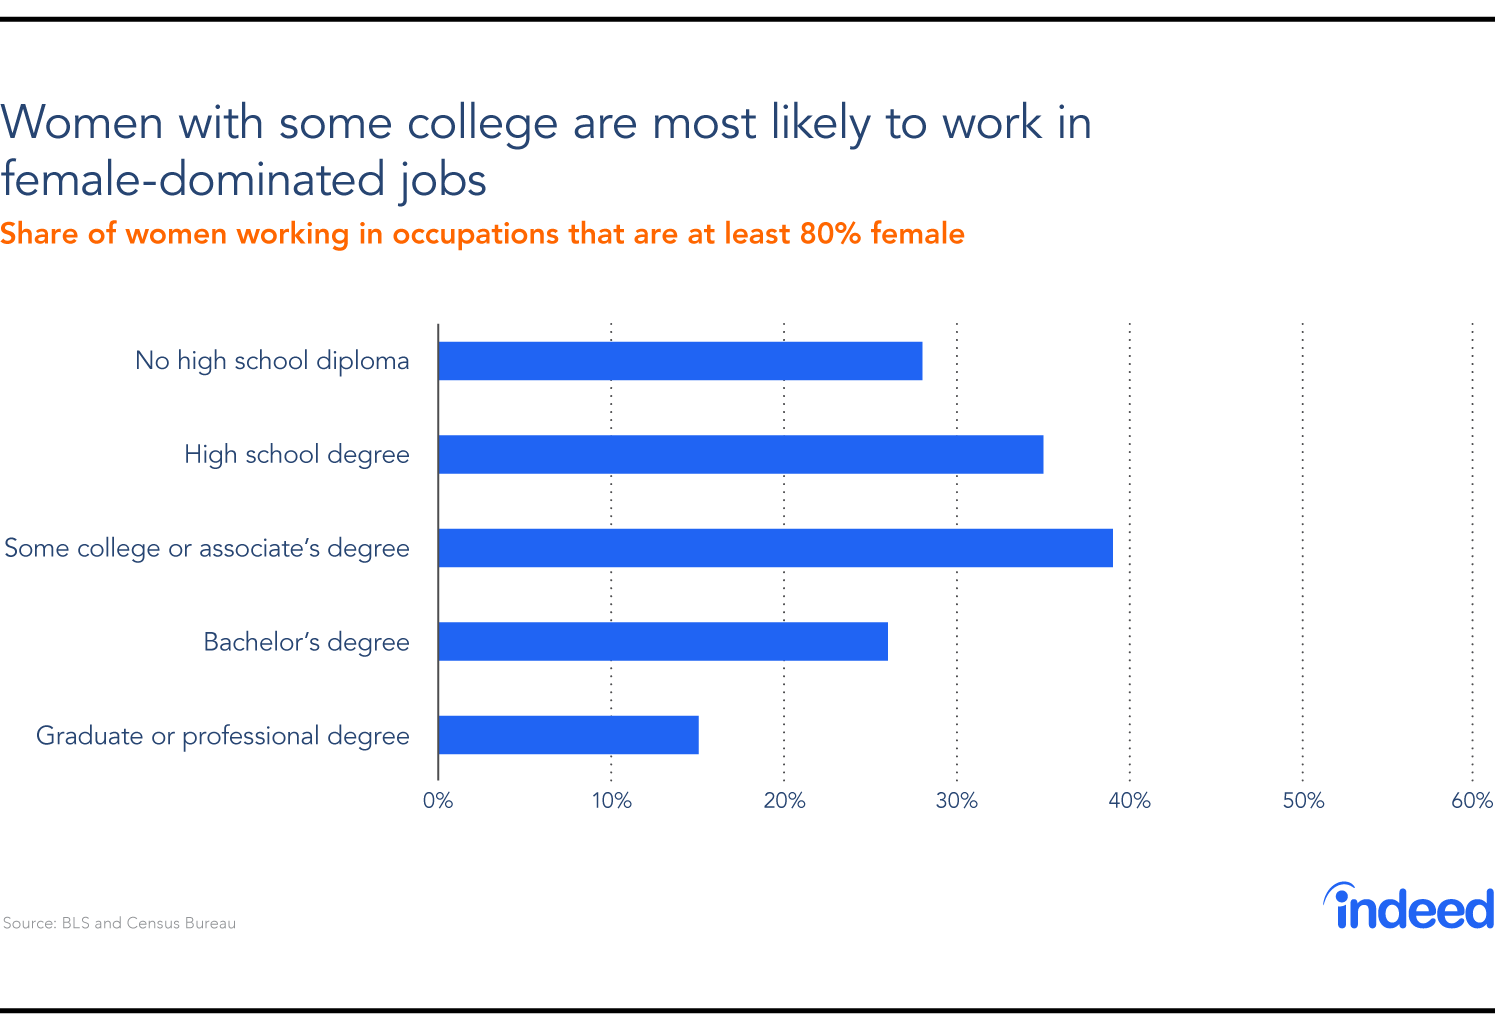 Women with some college are most likely to work in female dominated jobs